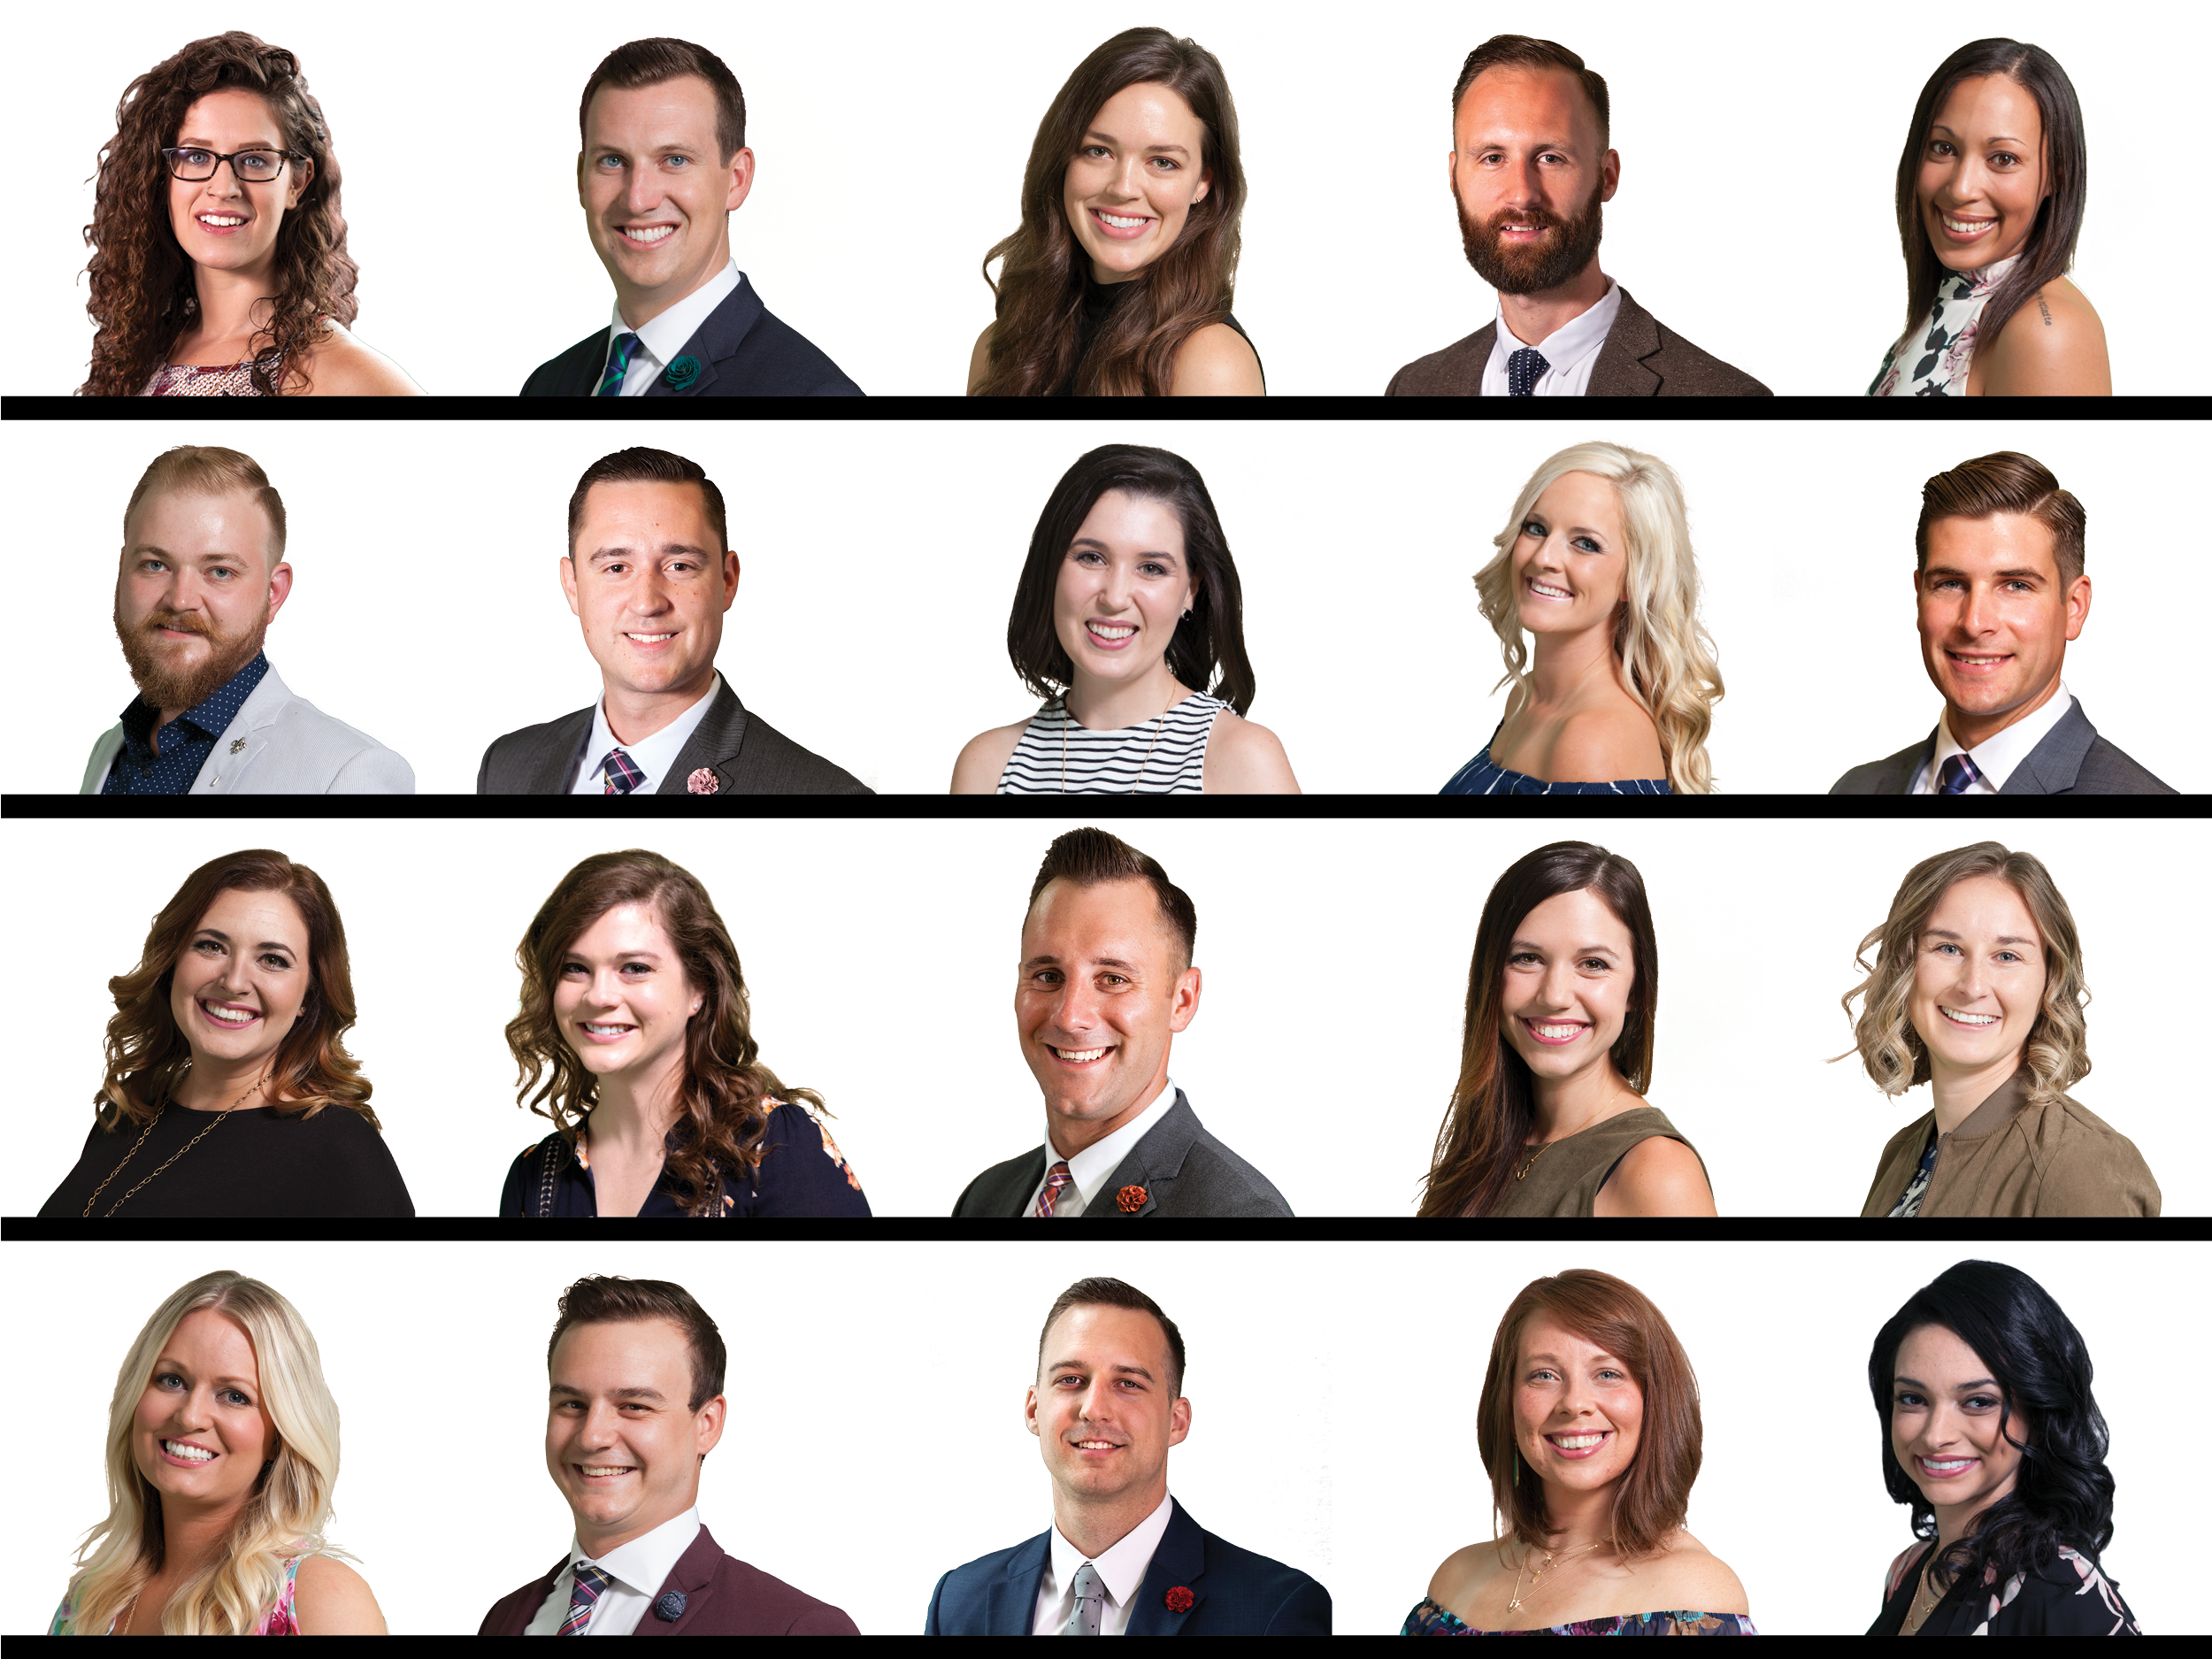 20 Under 30 Class of 2016